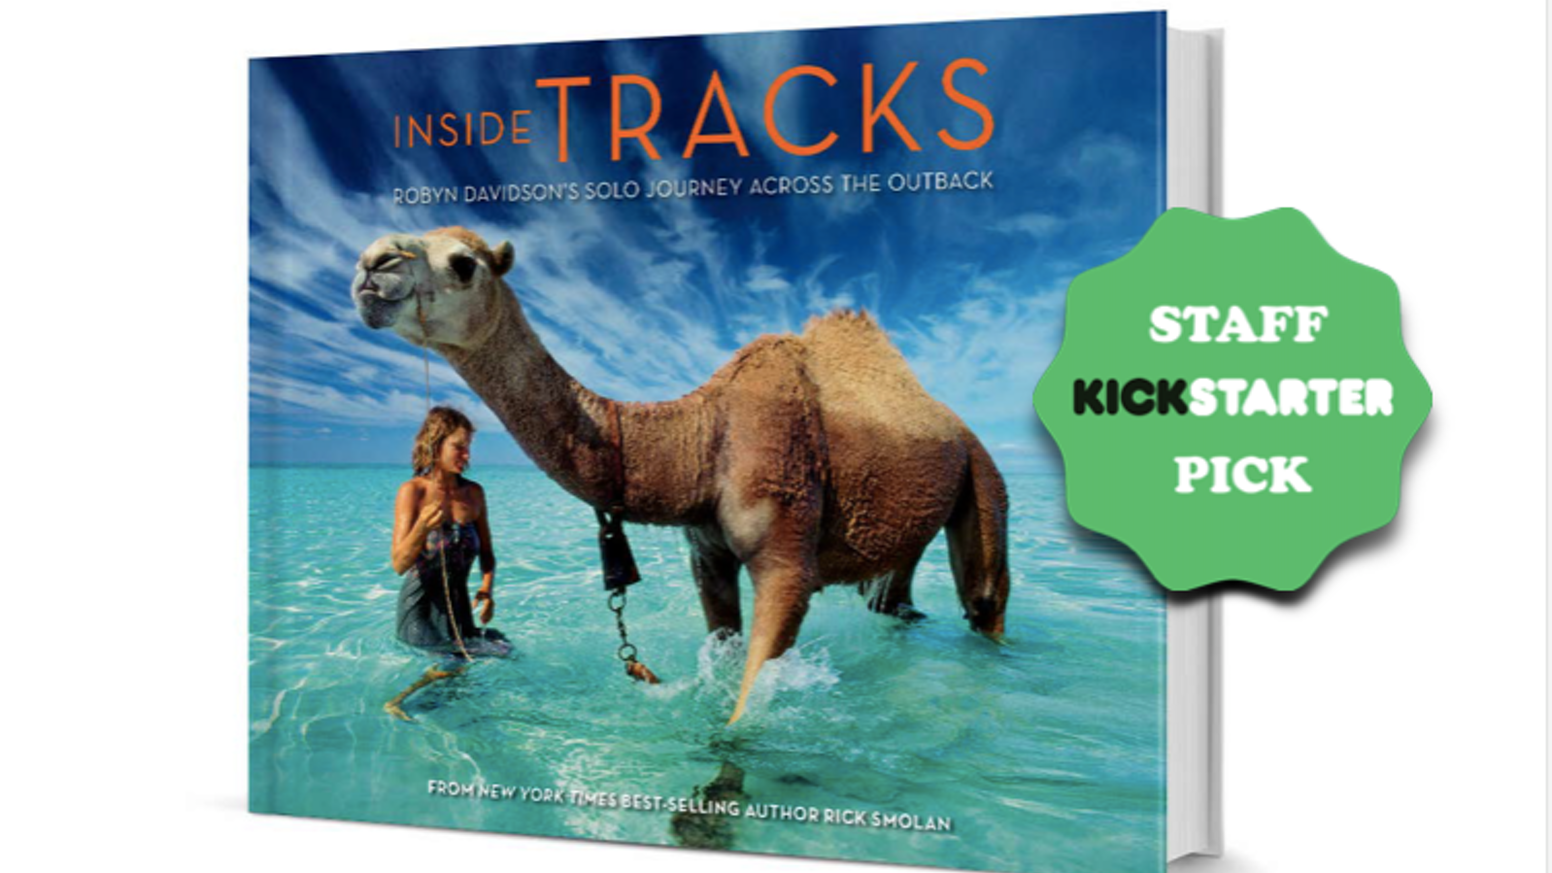 A stunning Smartphone enabled coffee table book based on Robyn Davidson's legendary 1,700 mile camel trek across the Australian Outback